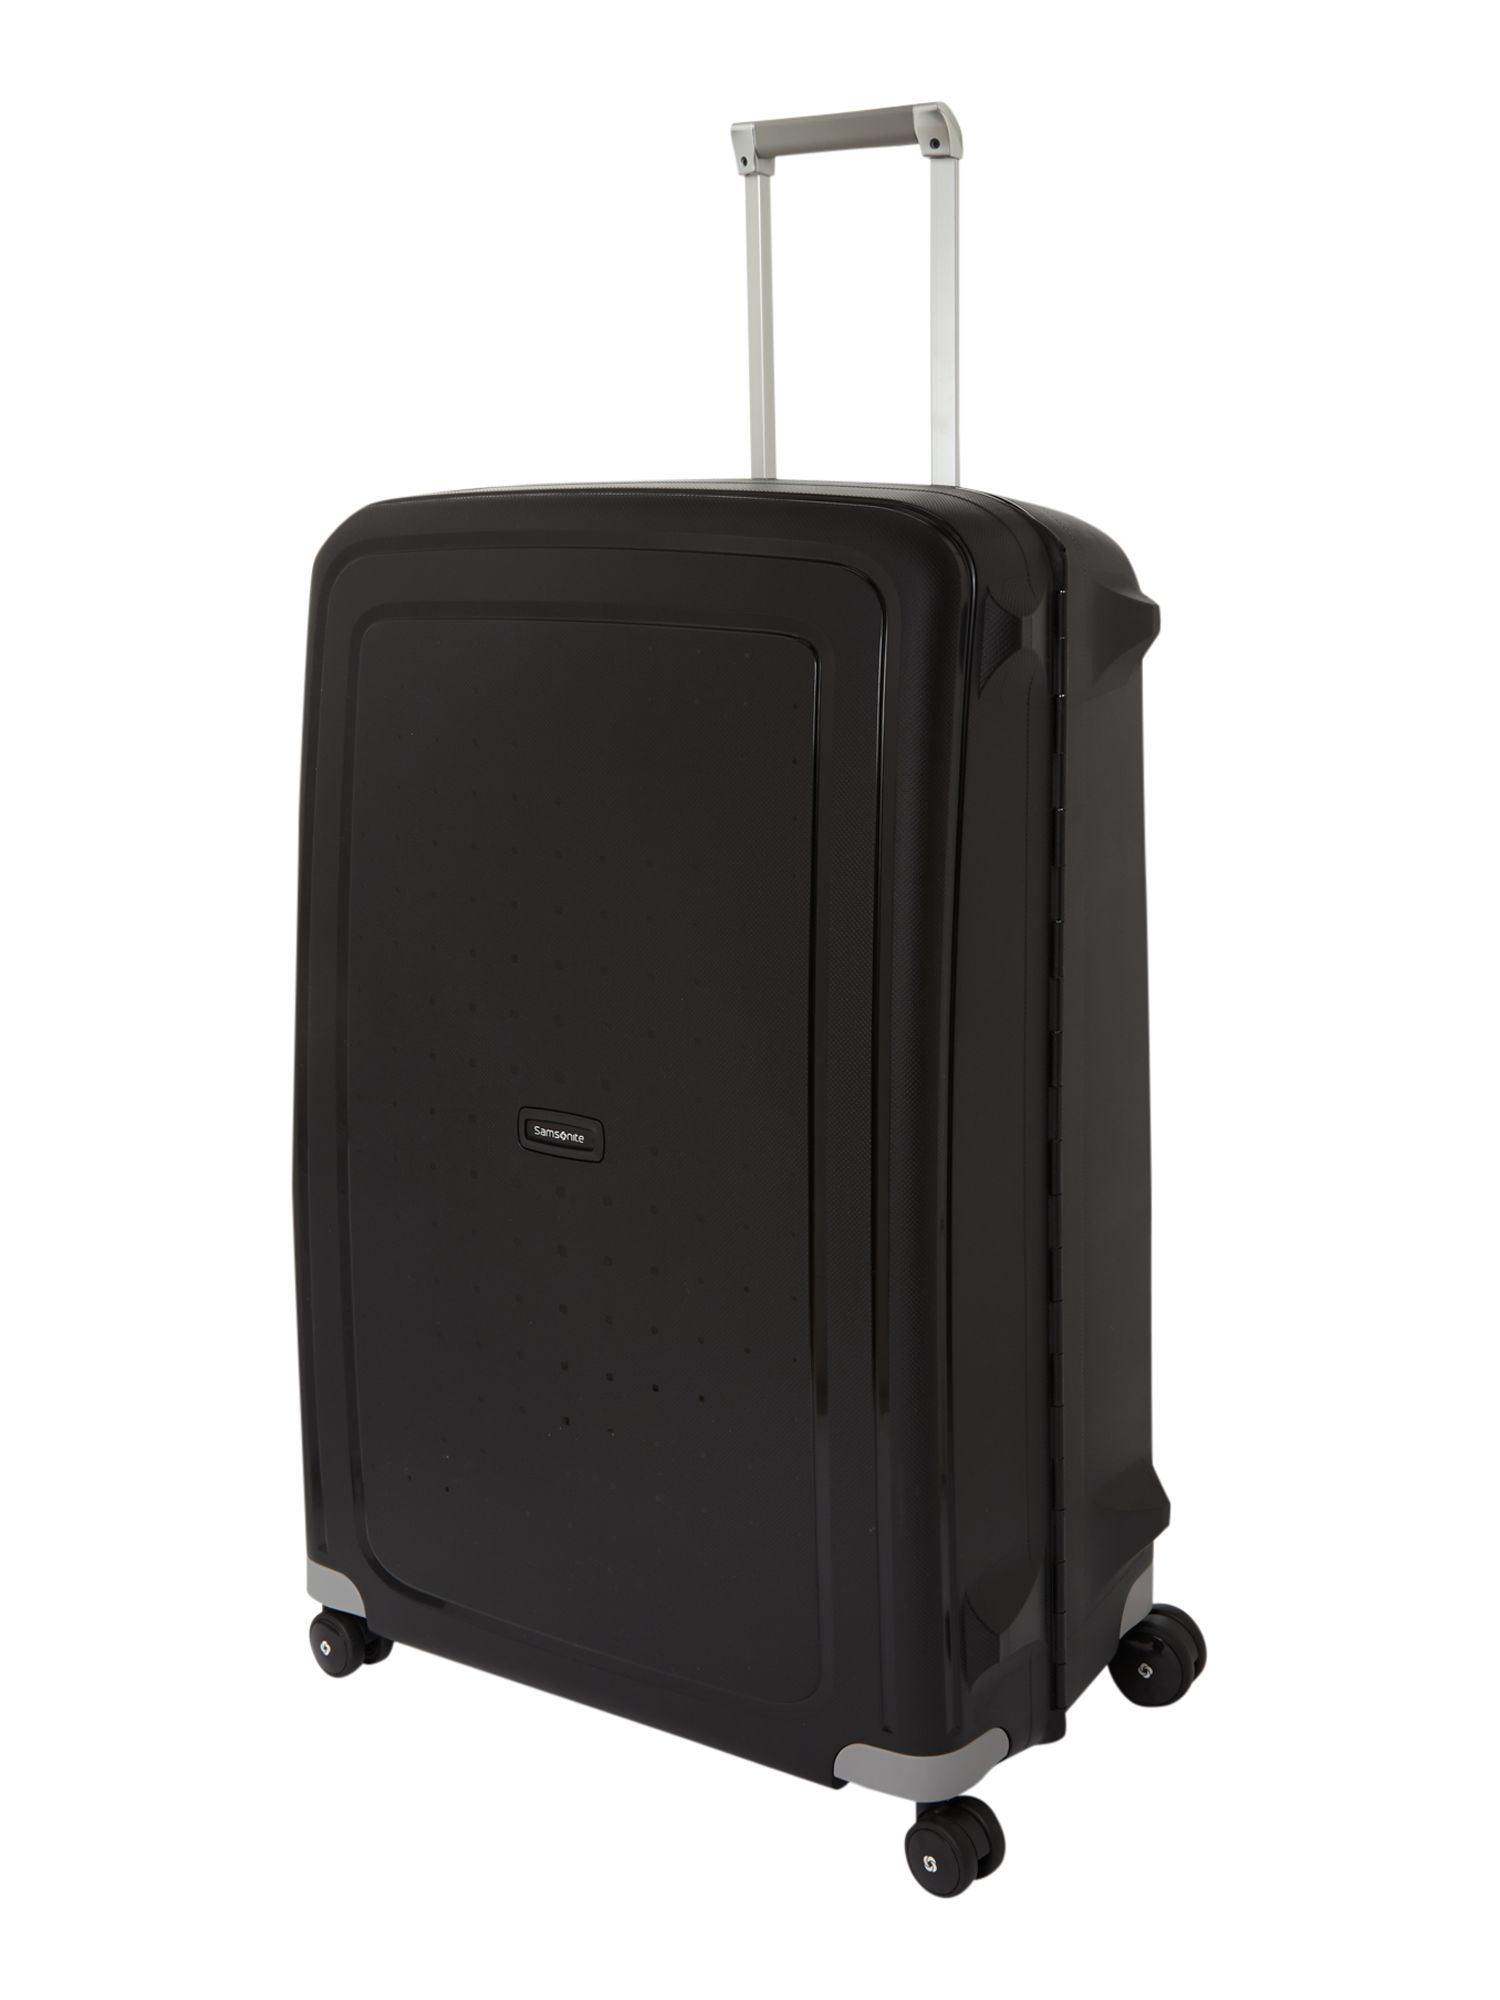 Samsonite S`Cure black 8 wheel 81cm extra large suitcase Black